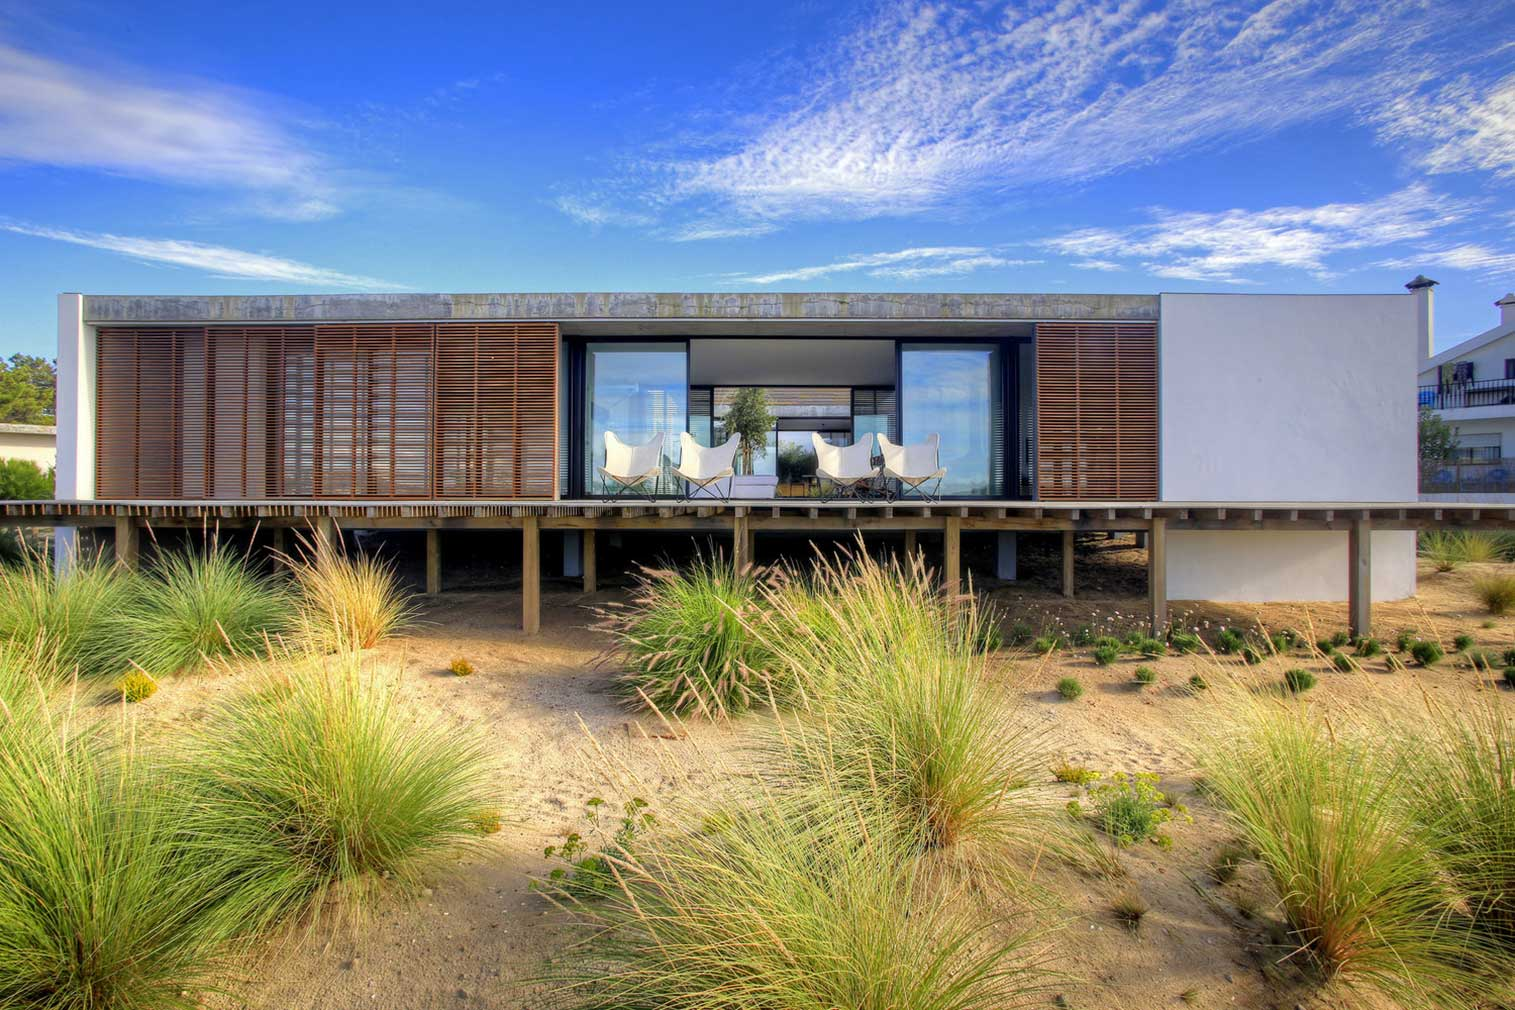 Casa do Pego holiday villa in Comporta, Portugal